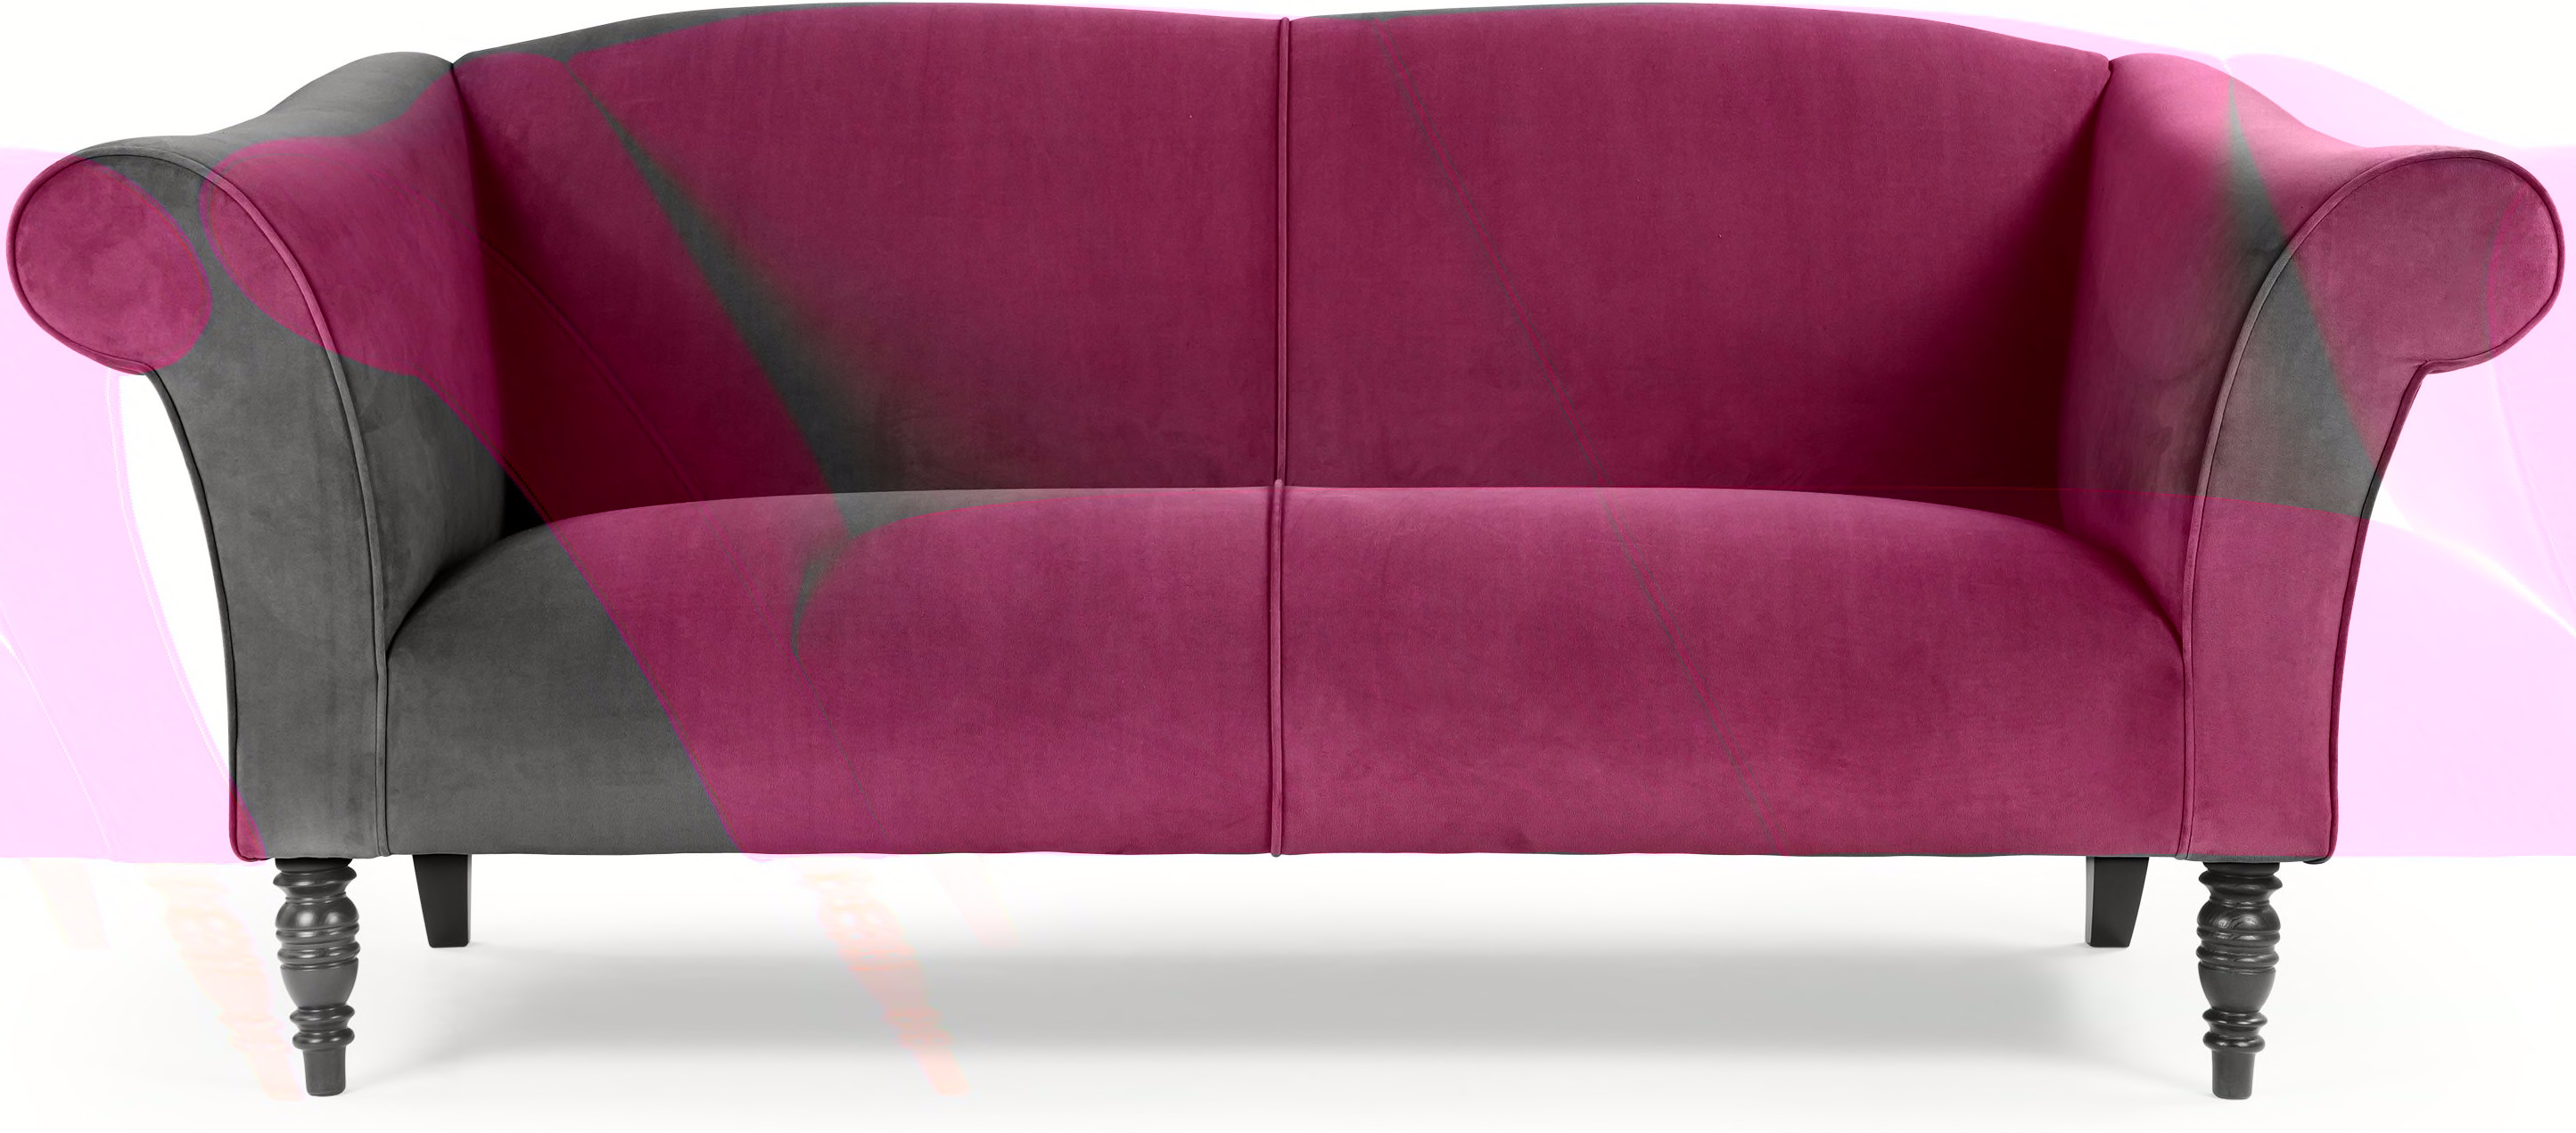 Pink Sofa Shop For Cheap Beds And Save Online